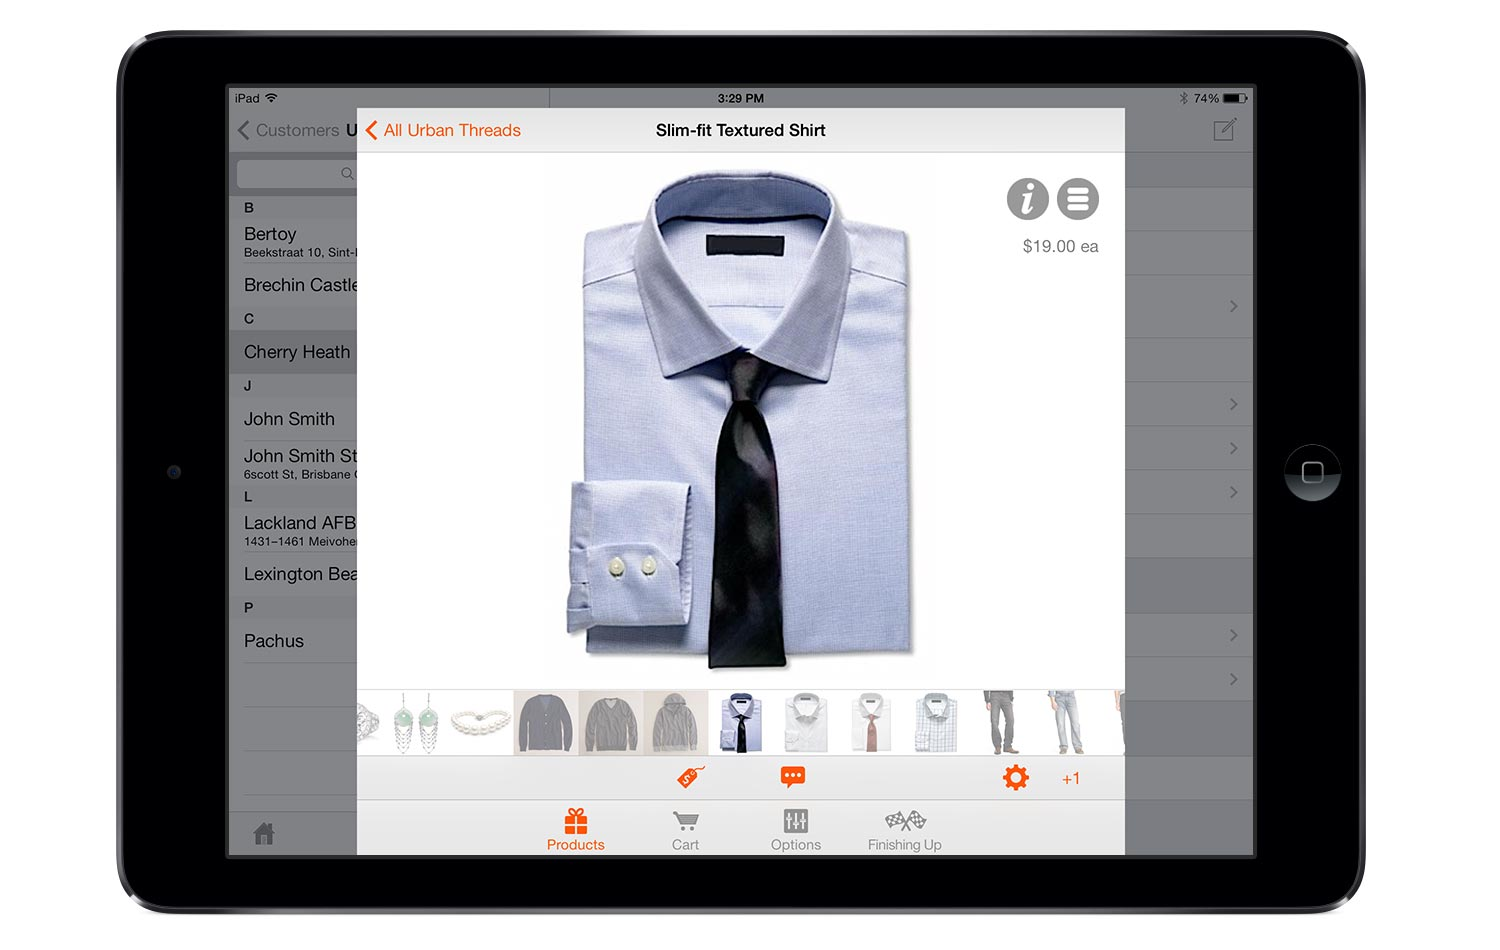 Touch Screen Order Entry App